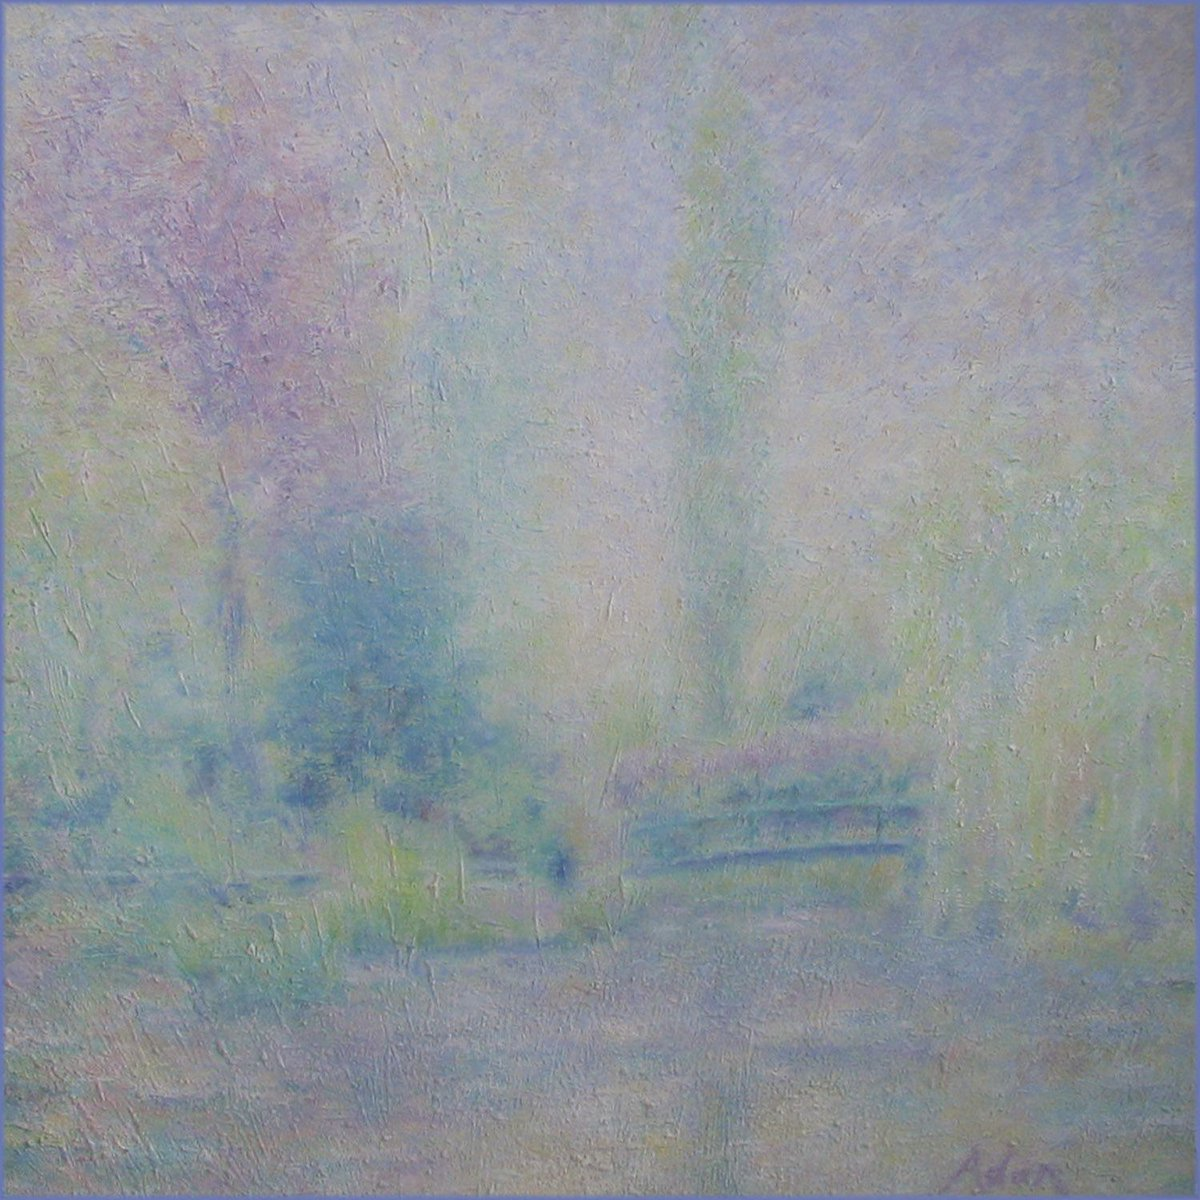 My original Paris photography of streets, nights & icons - @FineArtAmerica https://buff.ly/2wjjCbV  © Felipe Adan Lerma  Pictured - Monet's Garden in Rain #IconicParis #impressionismpic.twitter.com/r1cEAWOjq9